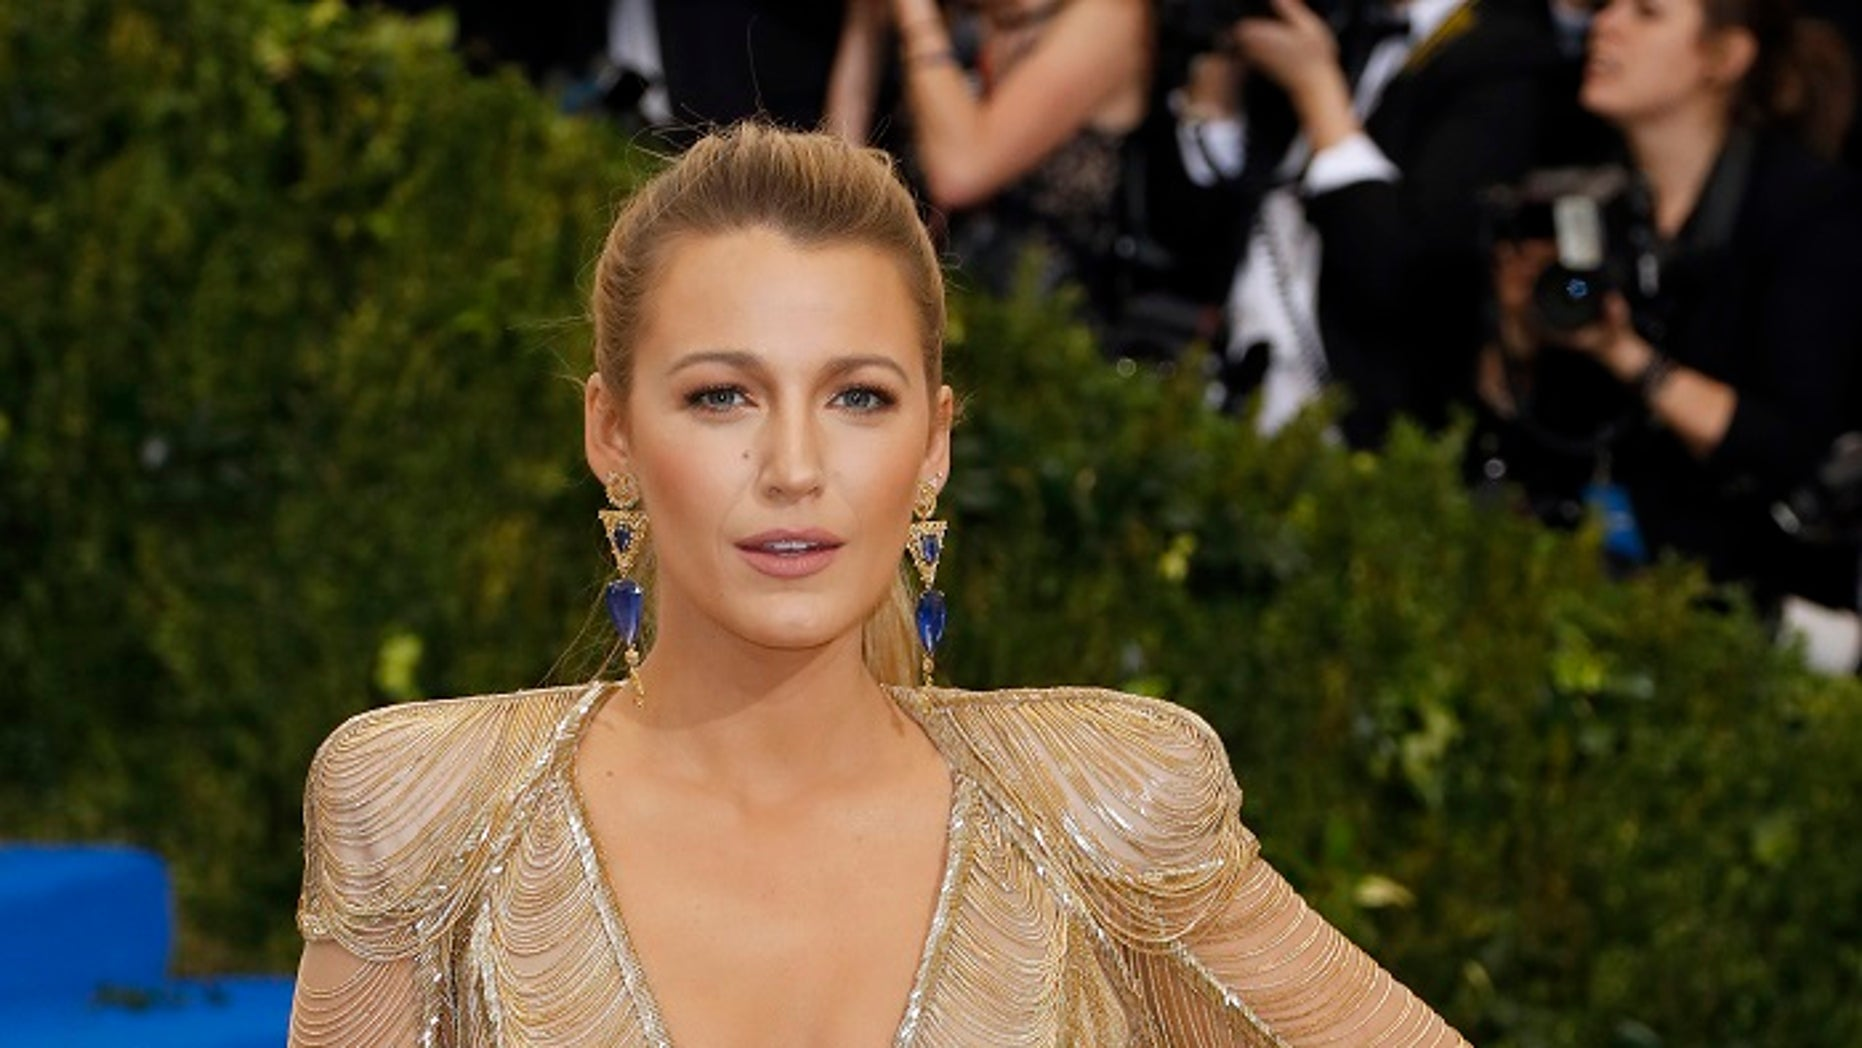 Metropolitan Museum of Art Costume Institute Gala - Rei Kawakubo/Comme des Garcons: Art of the In-Between - Arrivals - New York City, U.S. - 01/05/17 - Blake Lively. REUTERS/Lucas Jackson - HP1ED520570YK